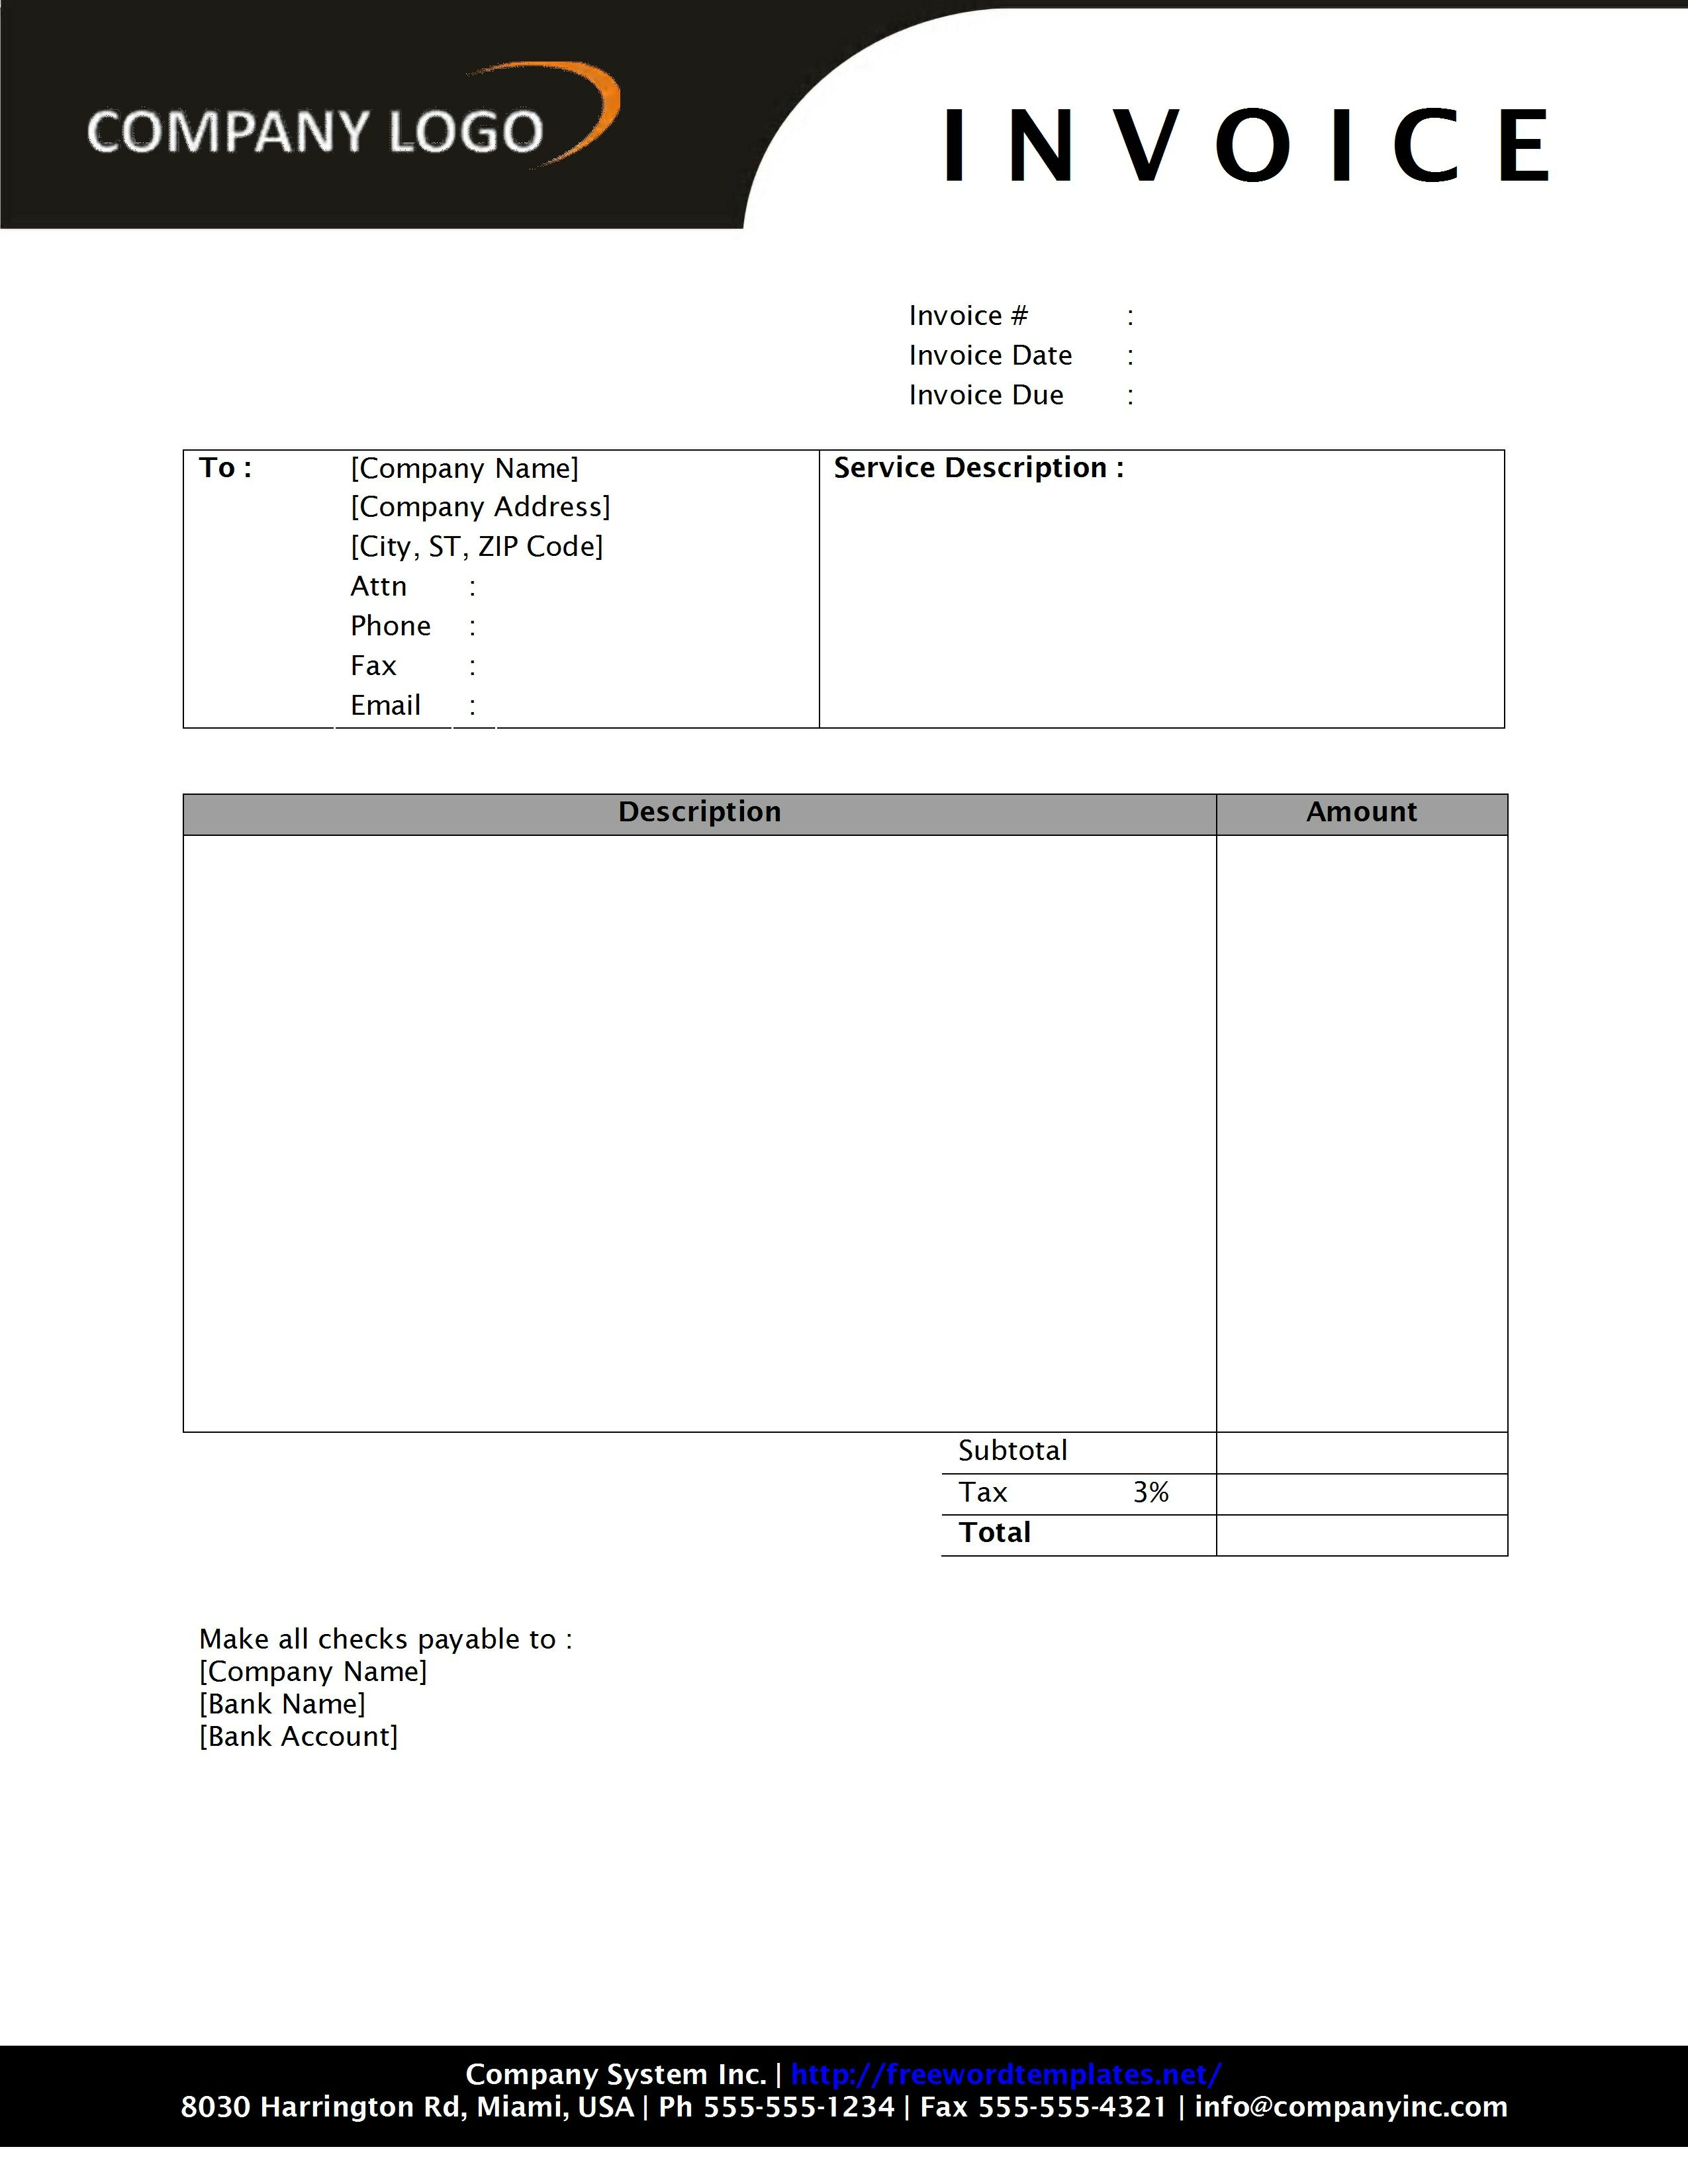 microsoft office 2007 invoice templates download